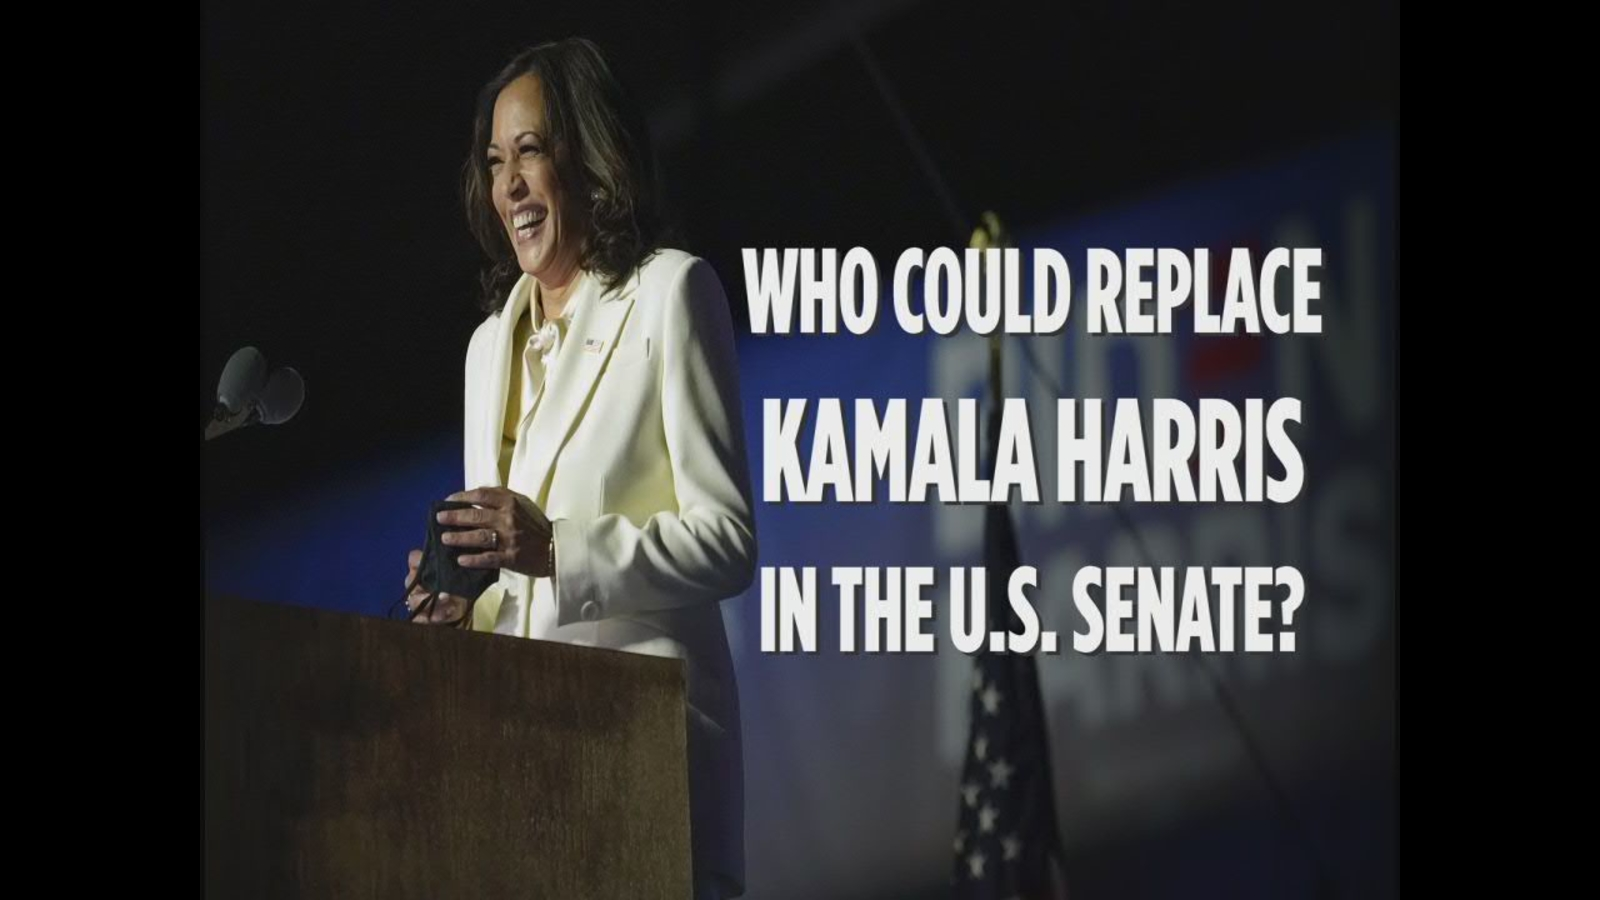 Who will replace Kamala Harris as a California senator? These are the top contenders